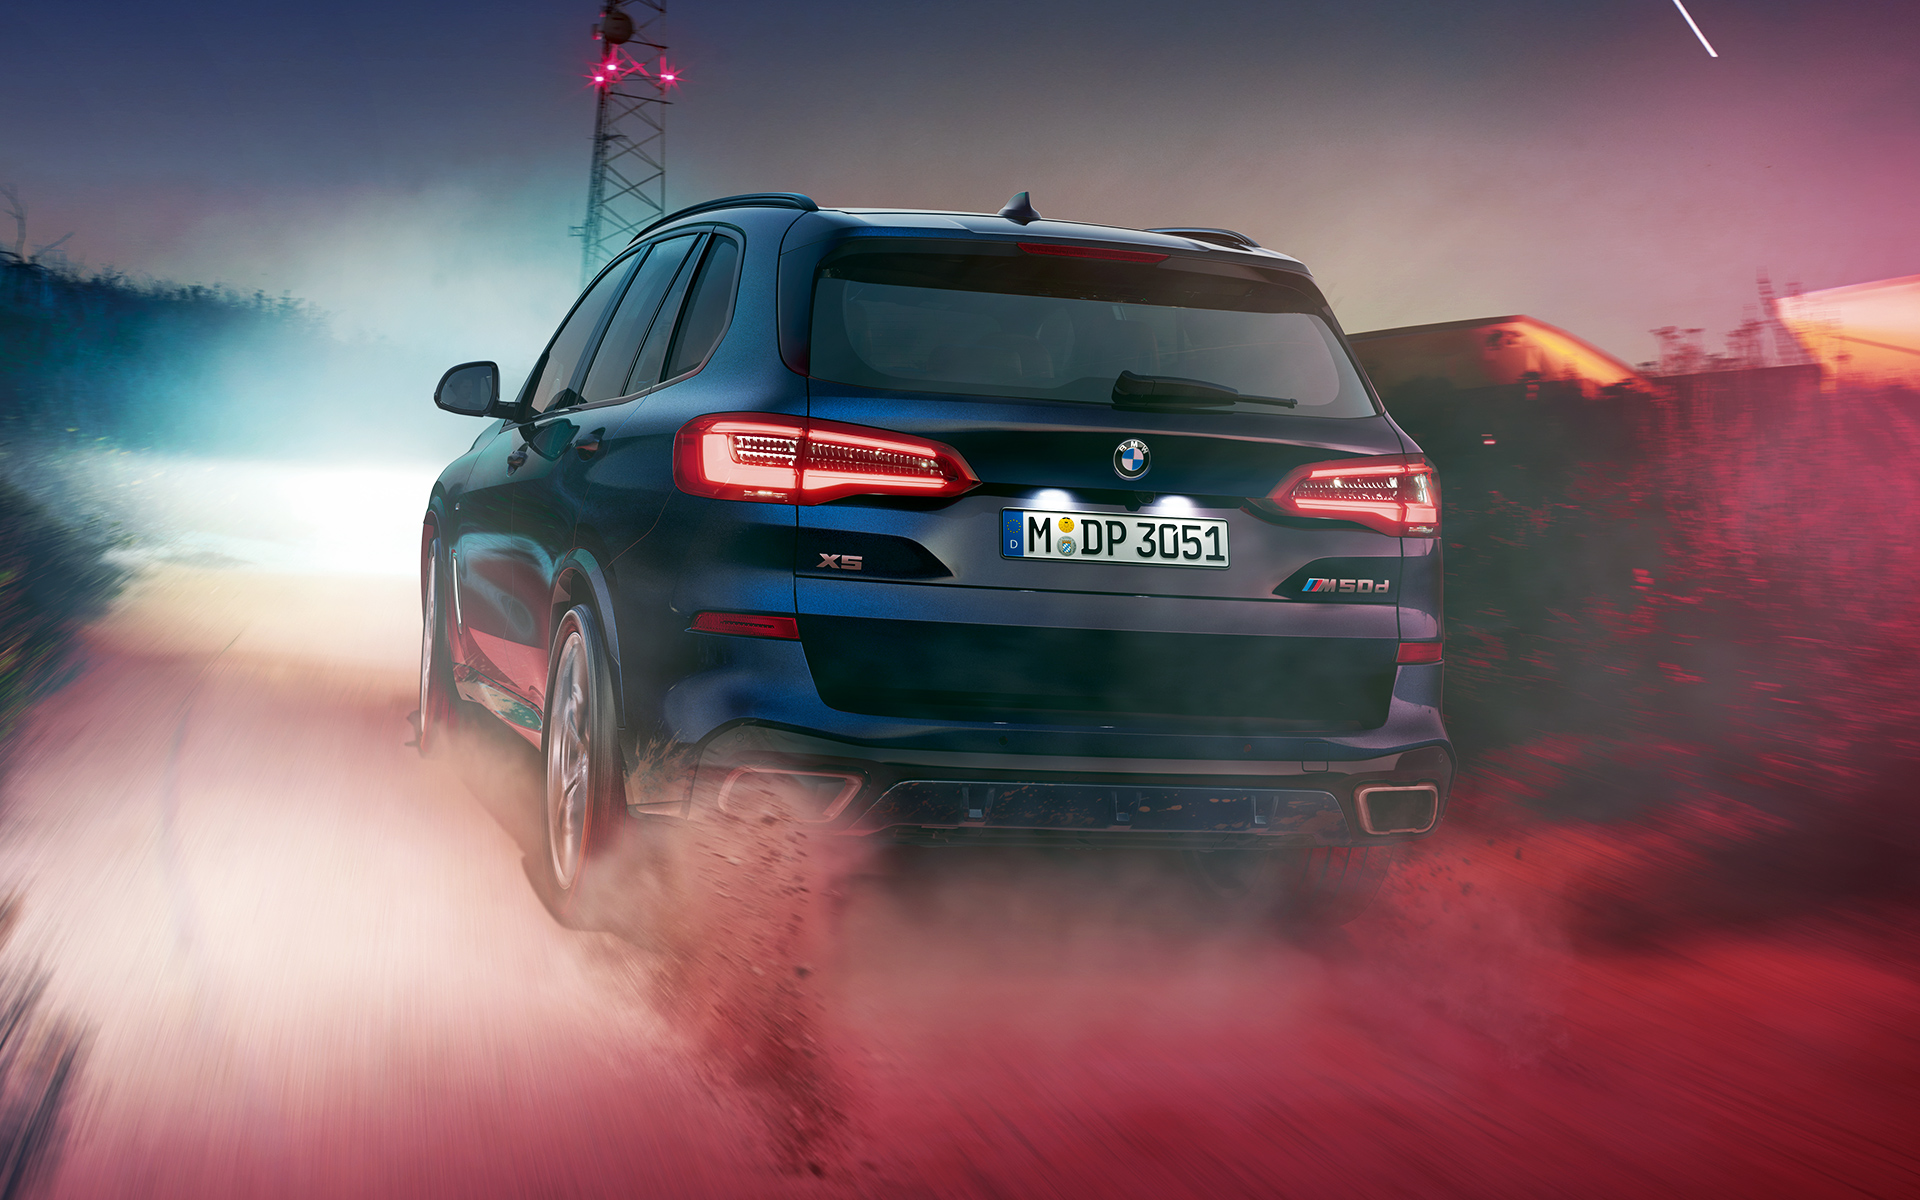 Rear of the BMW X5 M50d at night in an urban setting